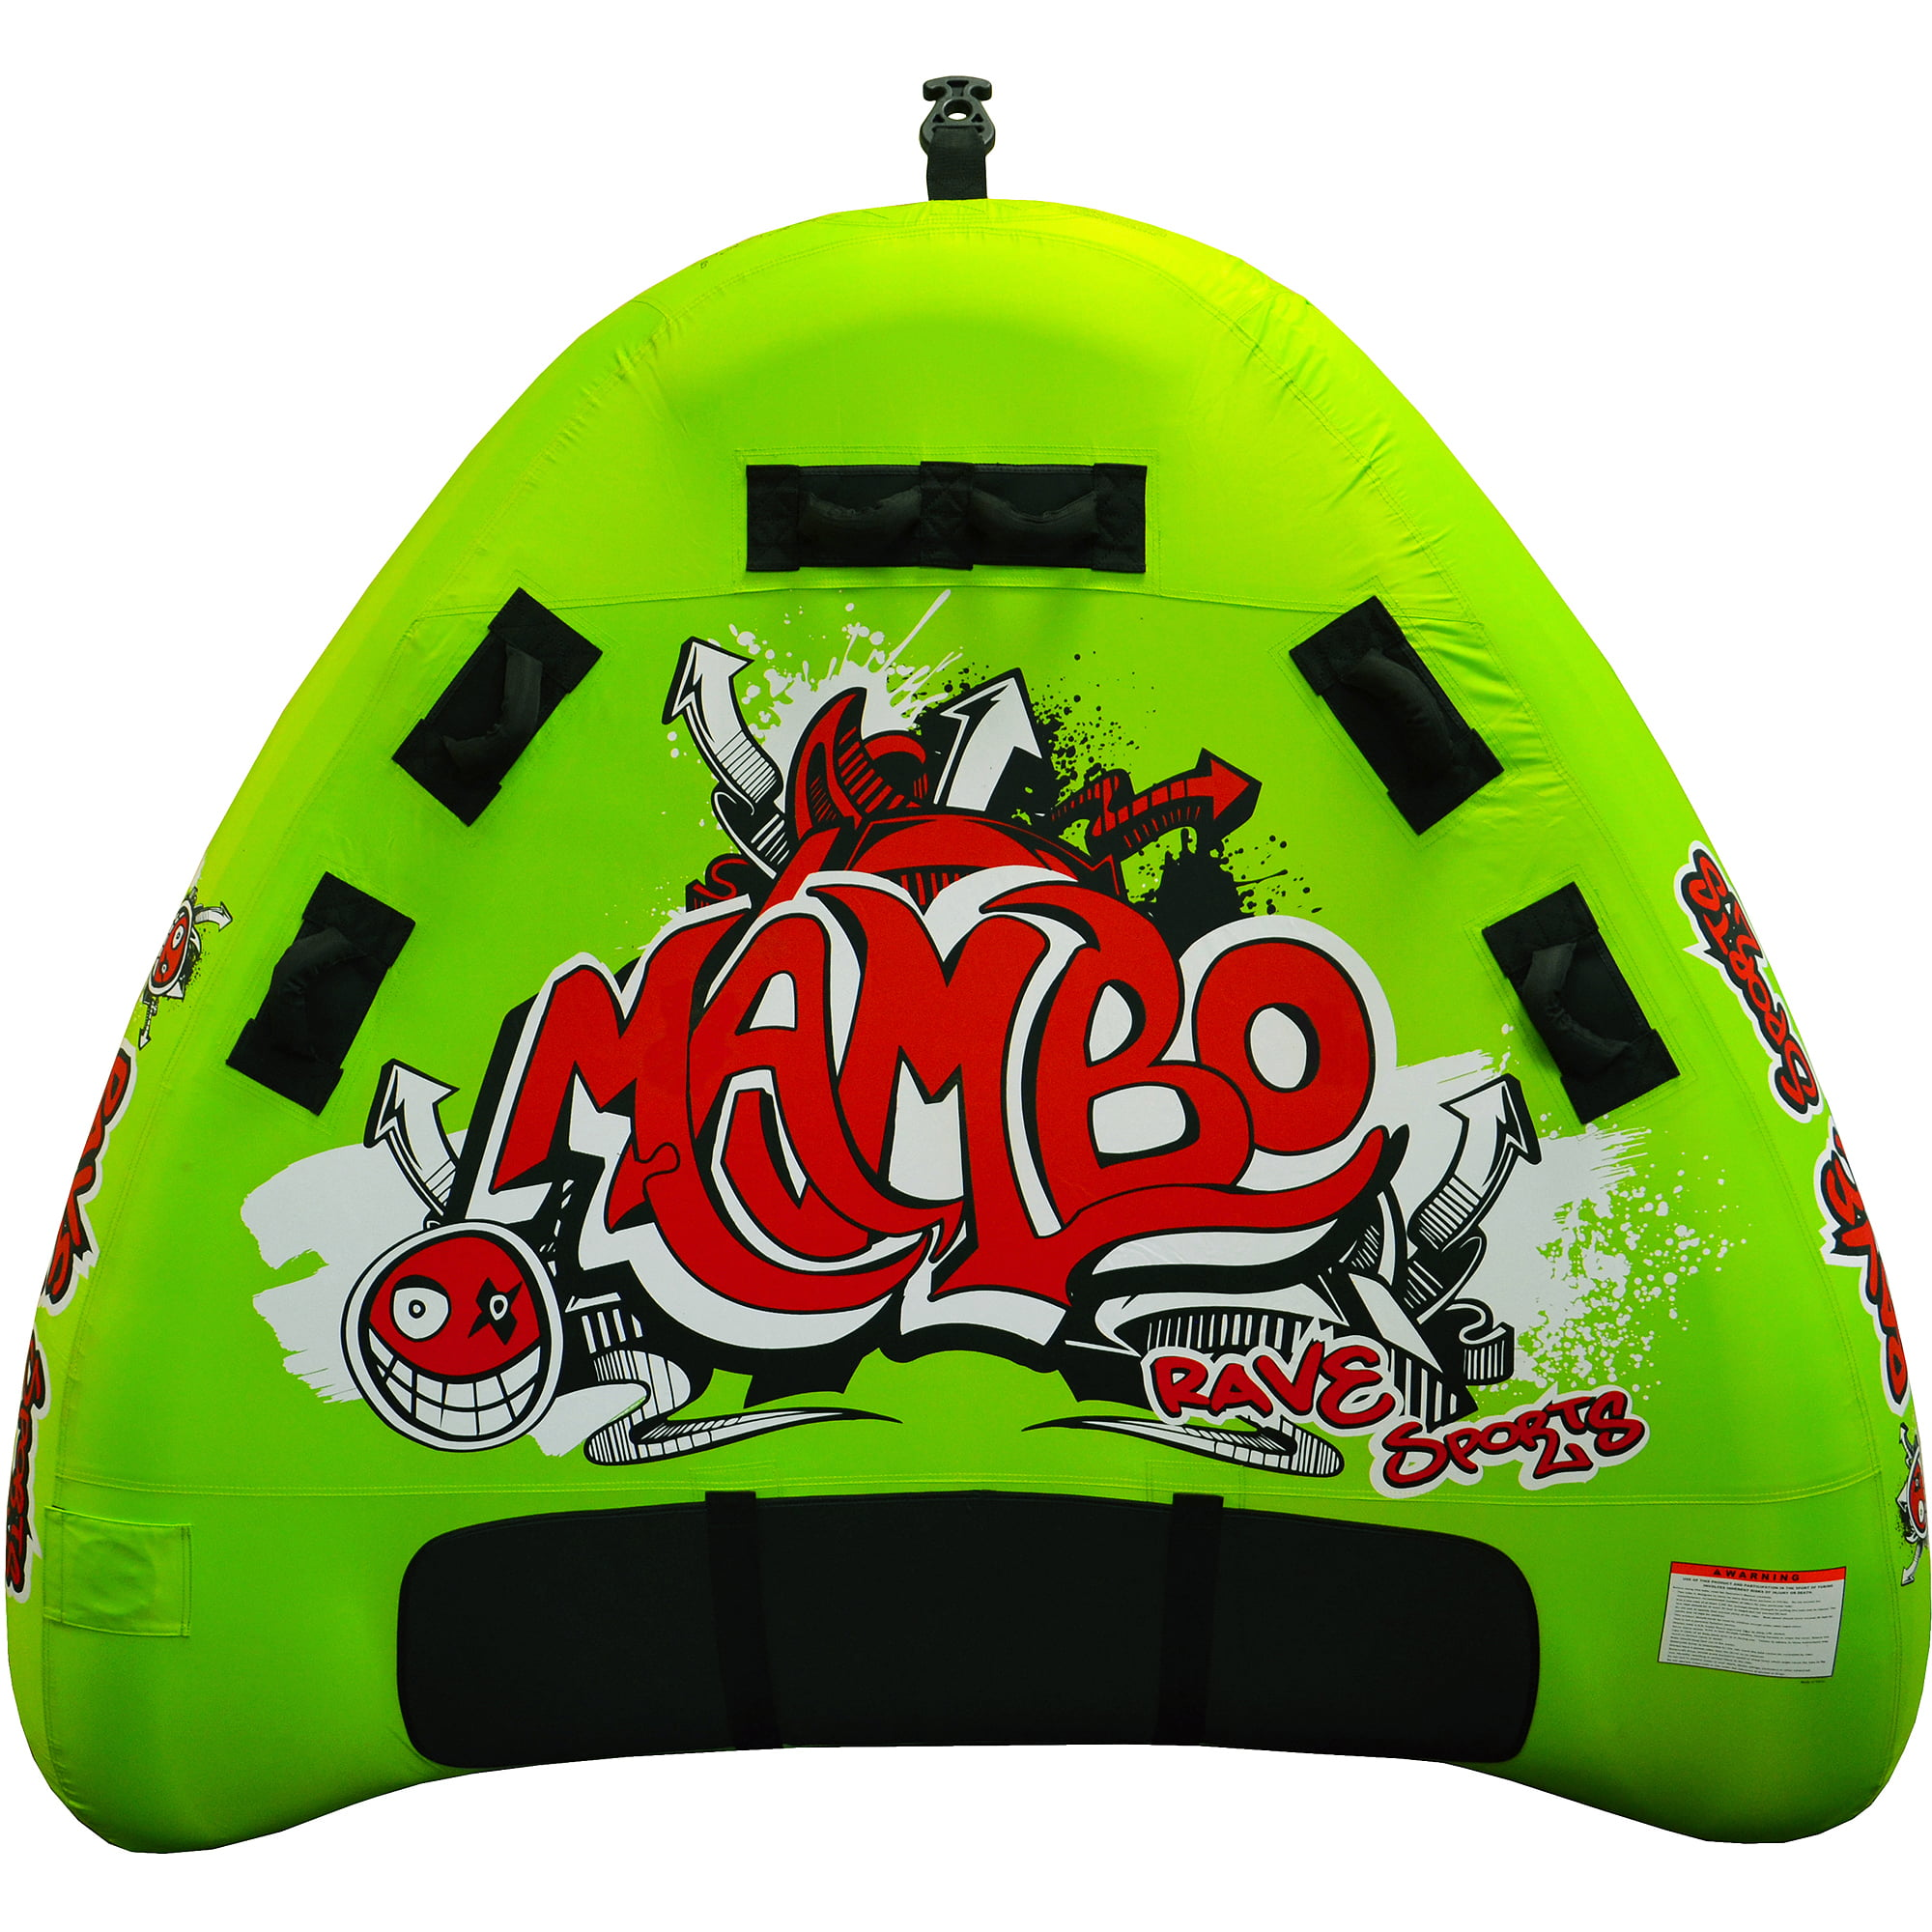 Rave Sports Mambo Swept Wing Deck 3-Rider Tube Towable by Rave Sports